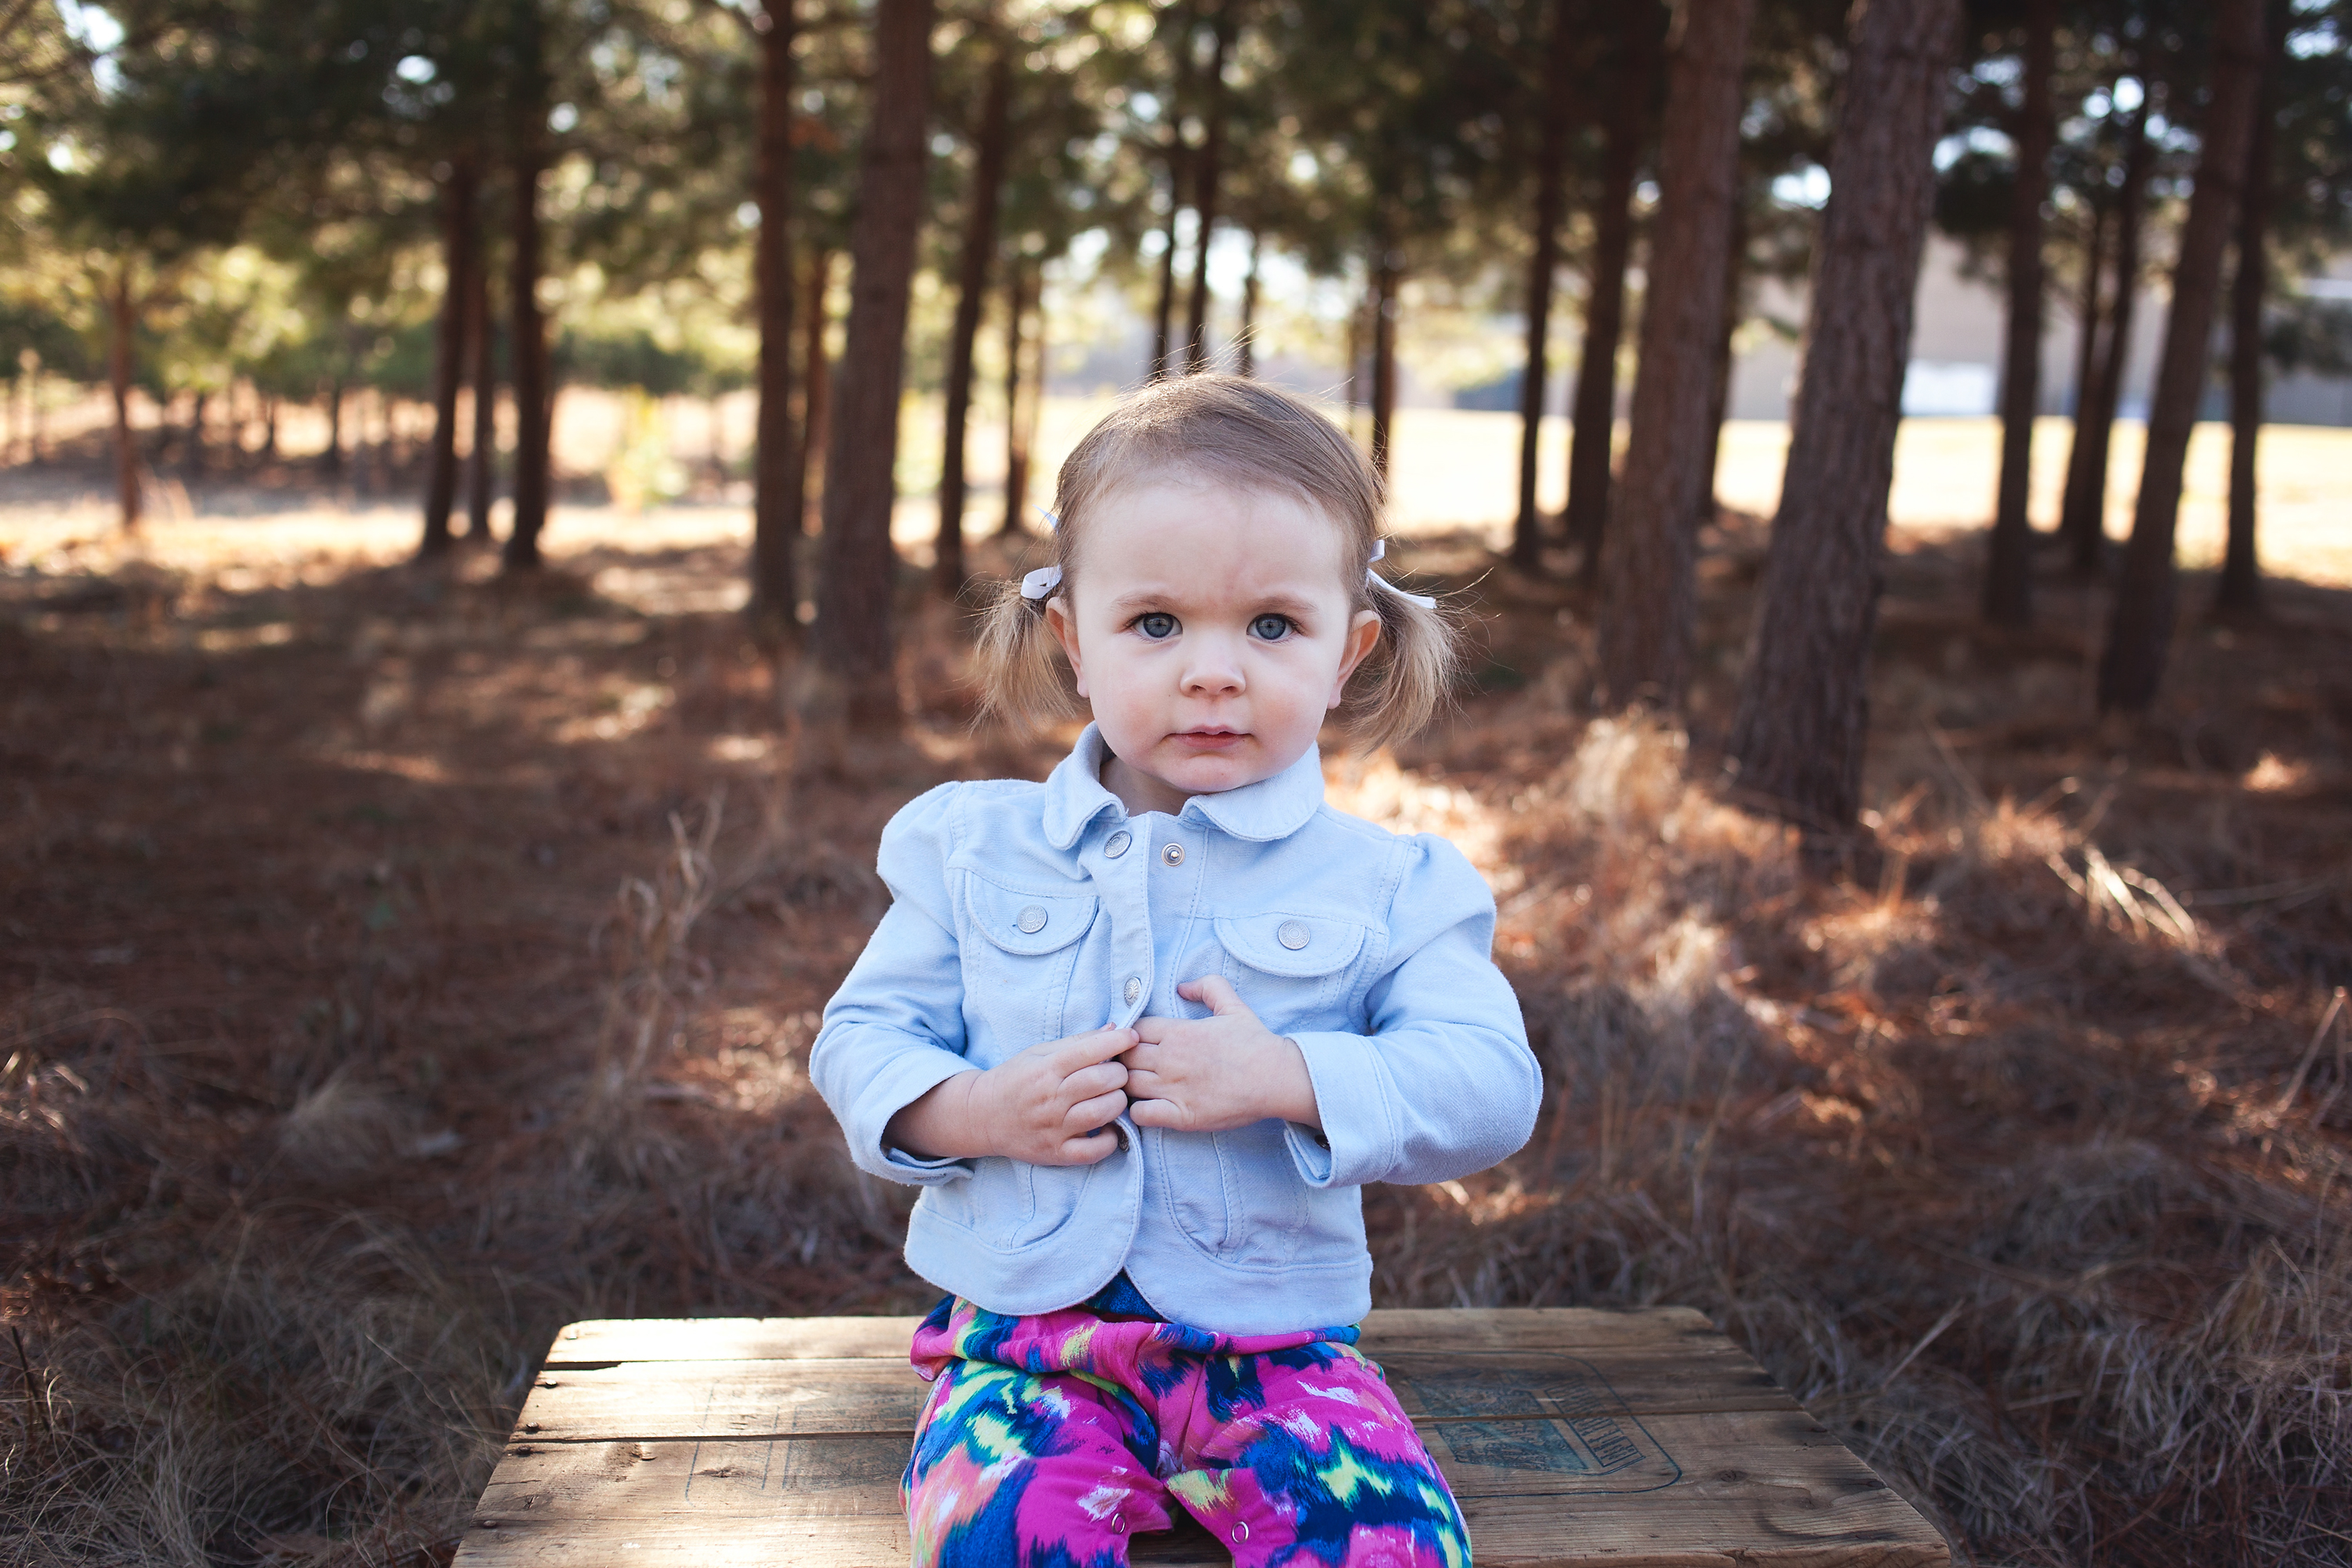 Erica-Mulford-Photography_026-copy